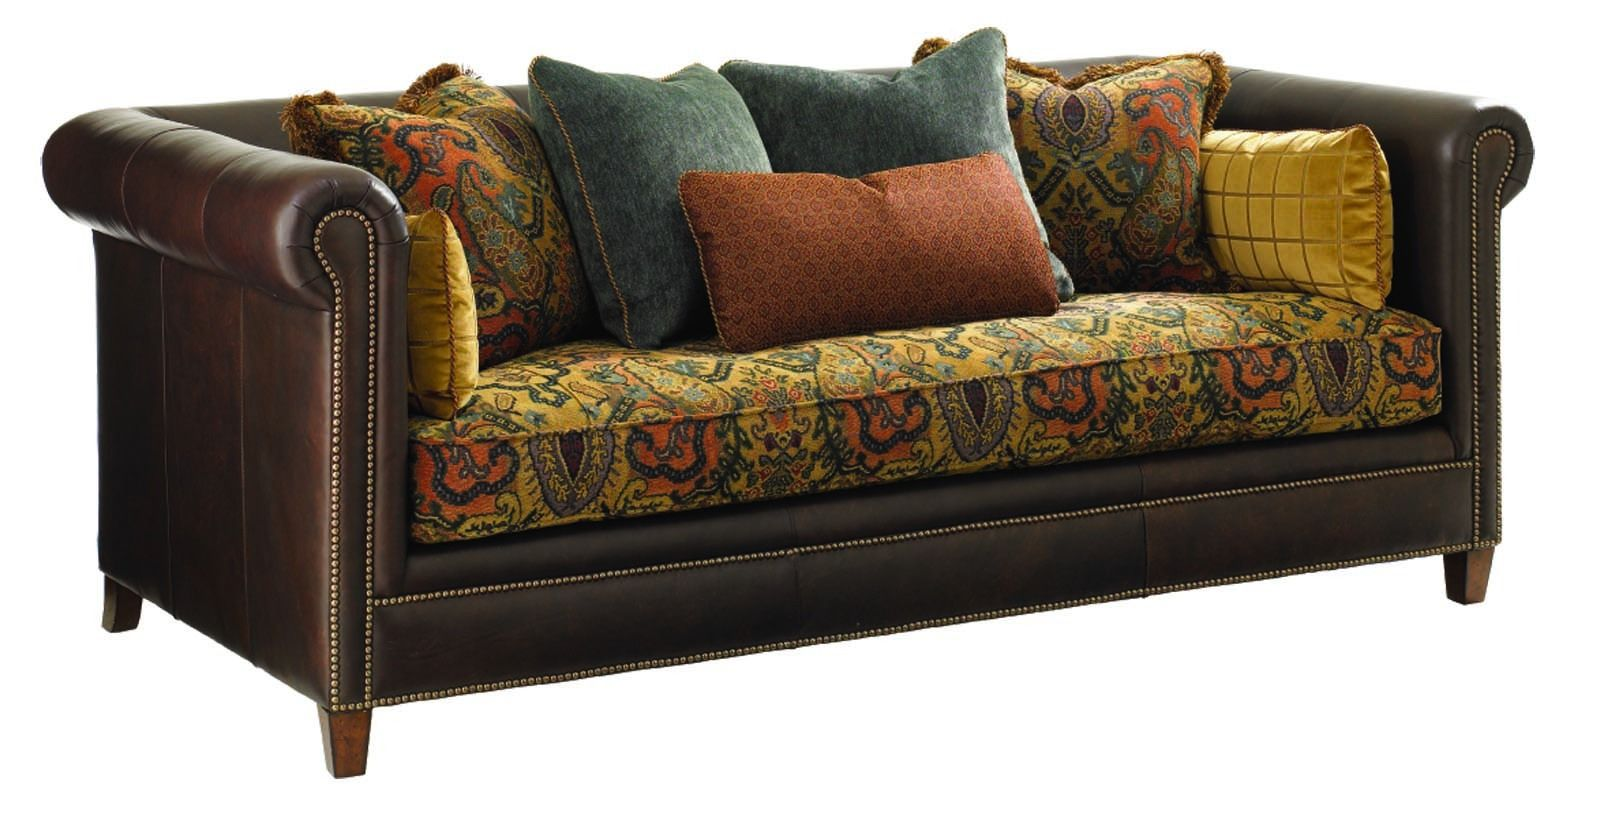 This Timeless Brown Owen Sofa Has Pleated Rolled Arms And Is Covered In Luxurious Renu Leather Fabric Description From Sofa Couch Fabric Sofa Cloth